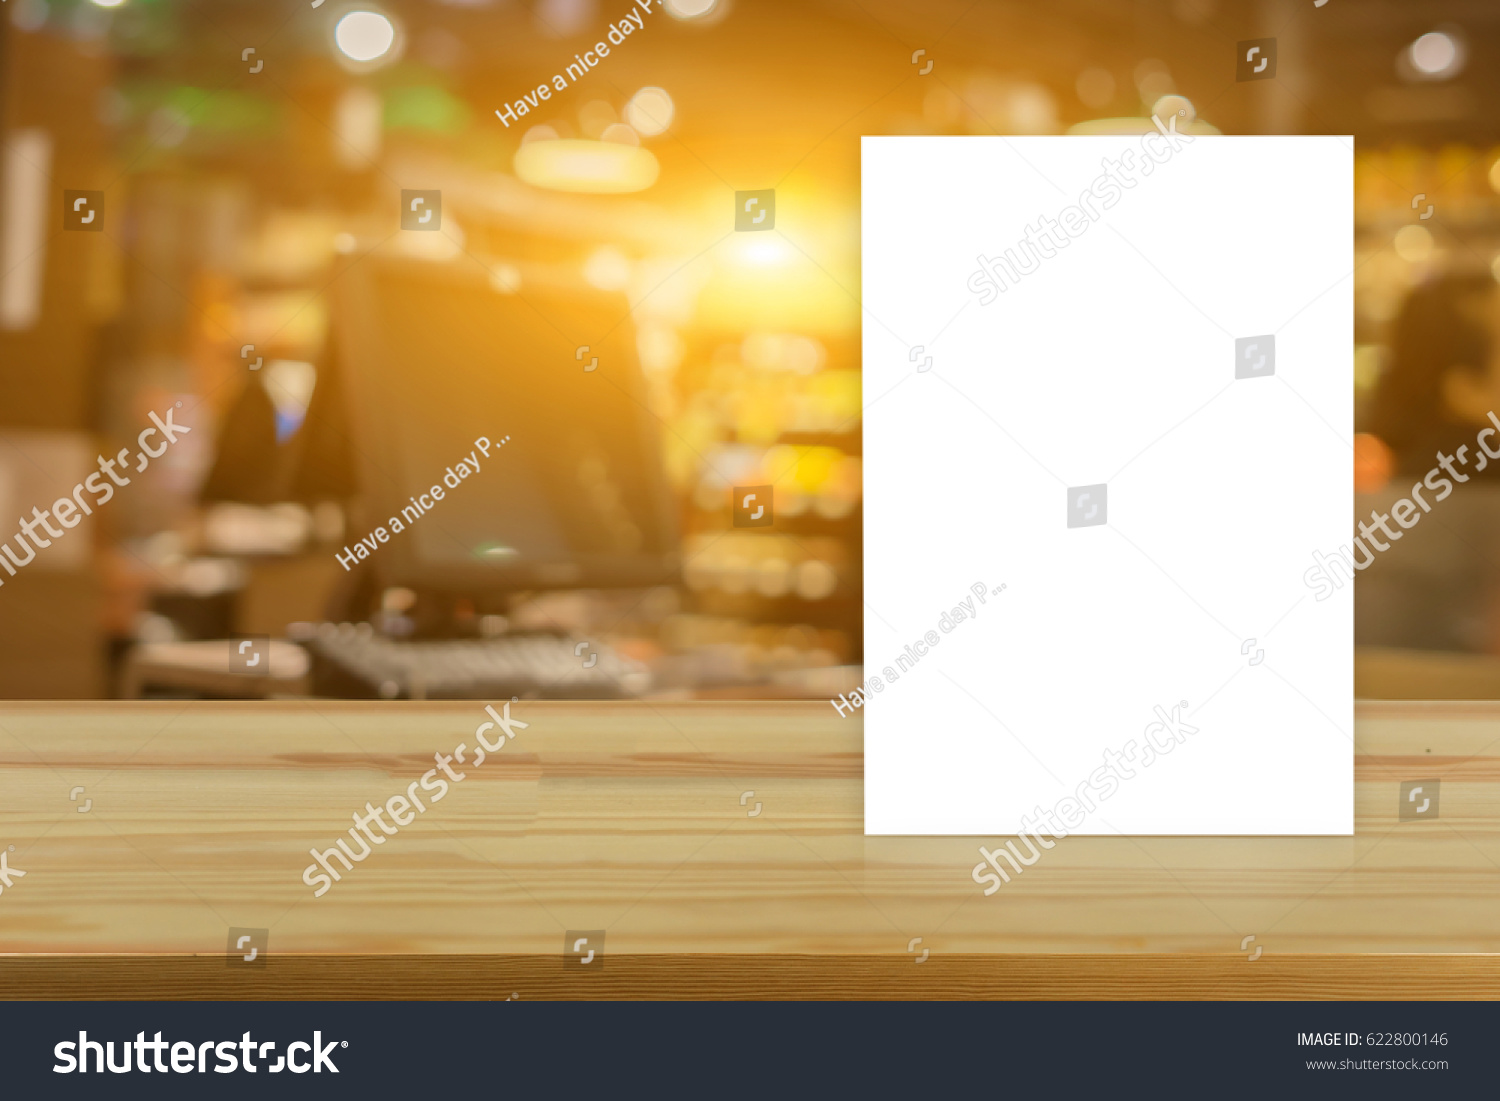 mock menu frame on table bar stock photo edit now 622800146